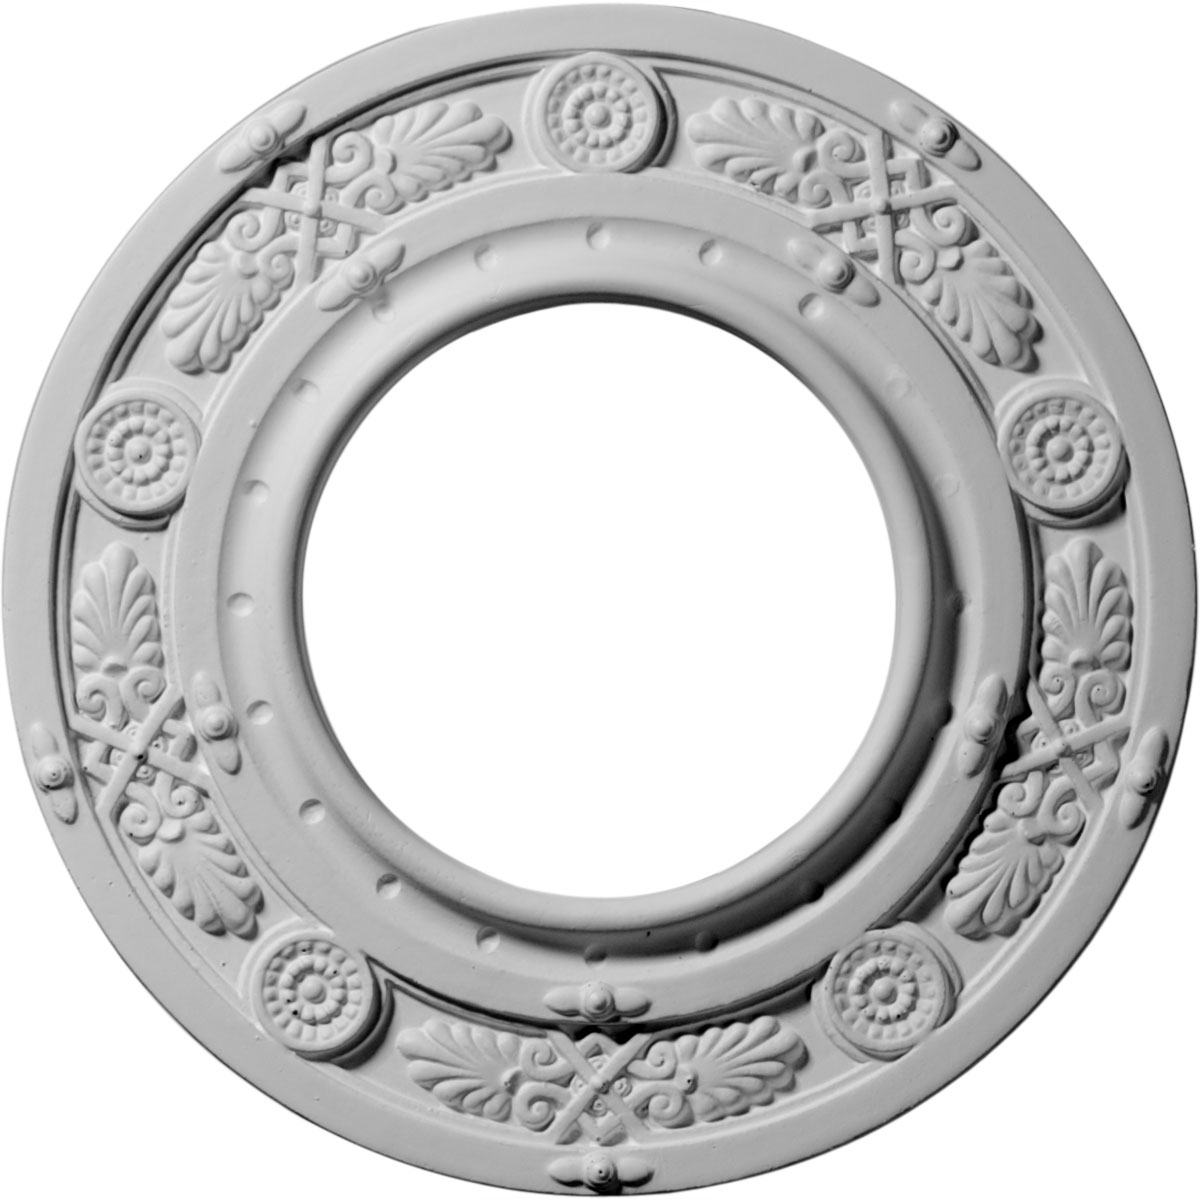 """8""""OD x 3 7/8""""ID x 1/2""""P Daniela Ceiling Medallion (Fits Canopies up to 3 7/8"""")"""